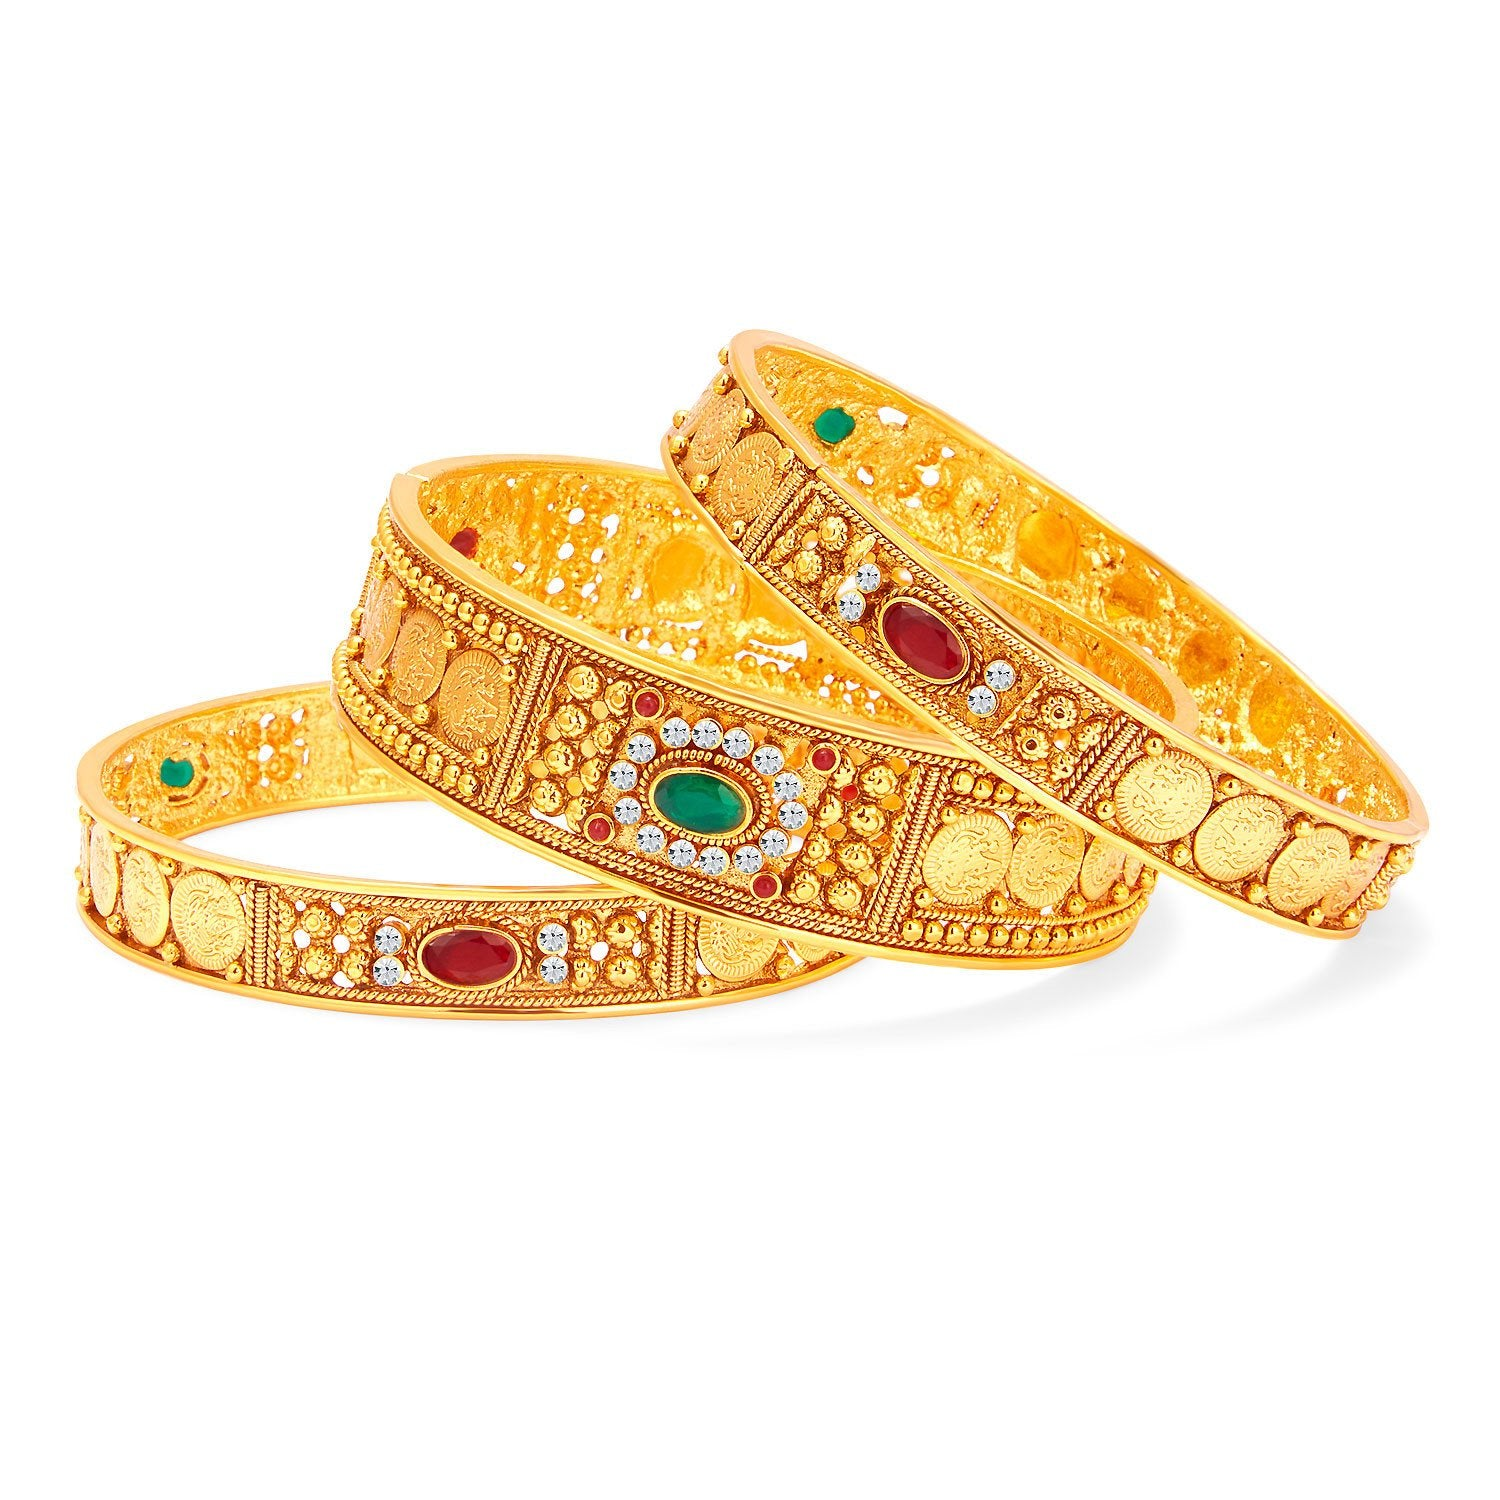 Sukkhi Fascinating Temple Jewelery Gold Plated Coin Bangle For Women